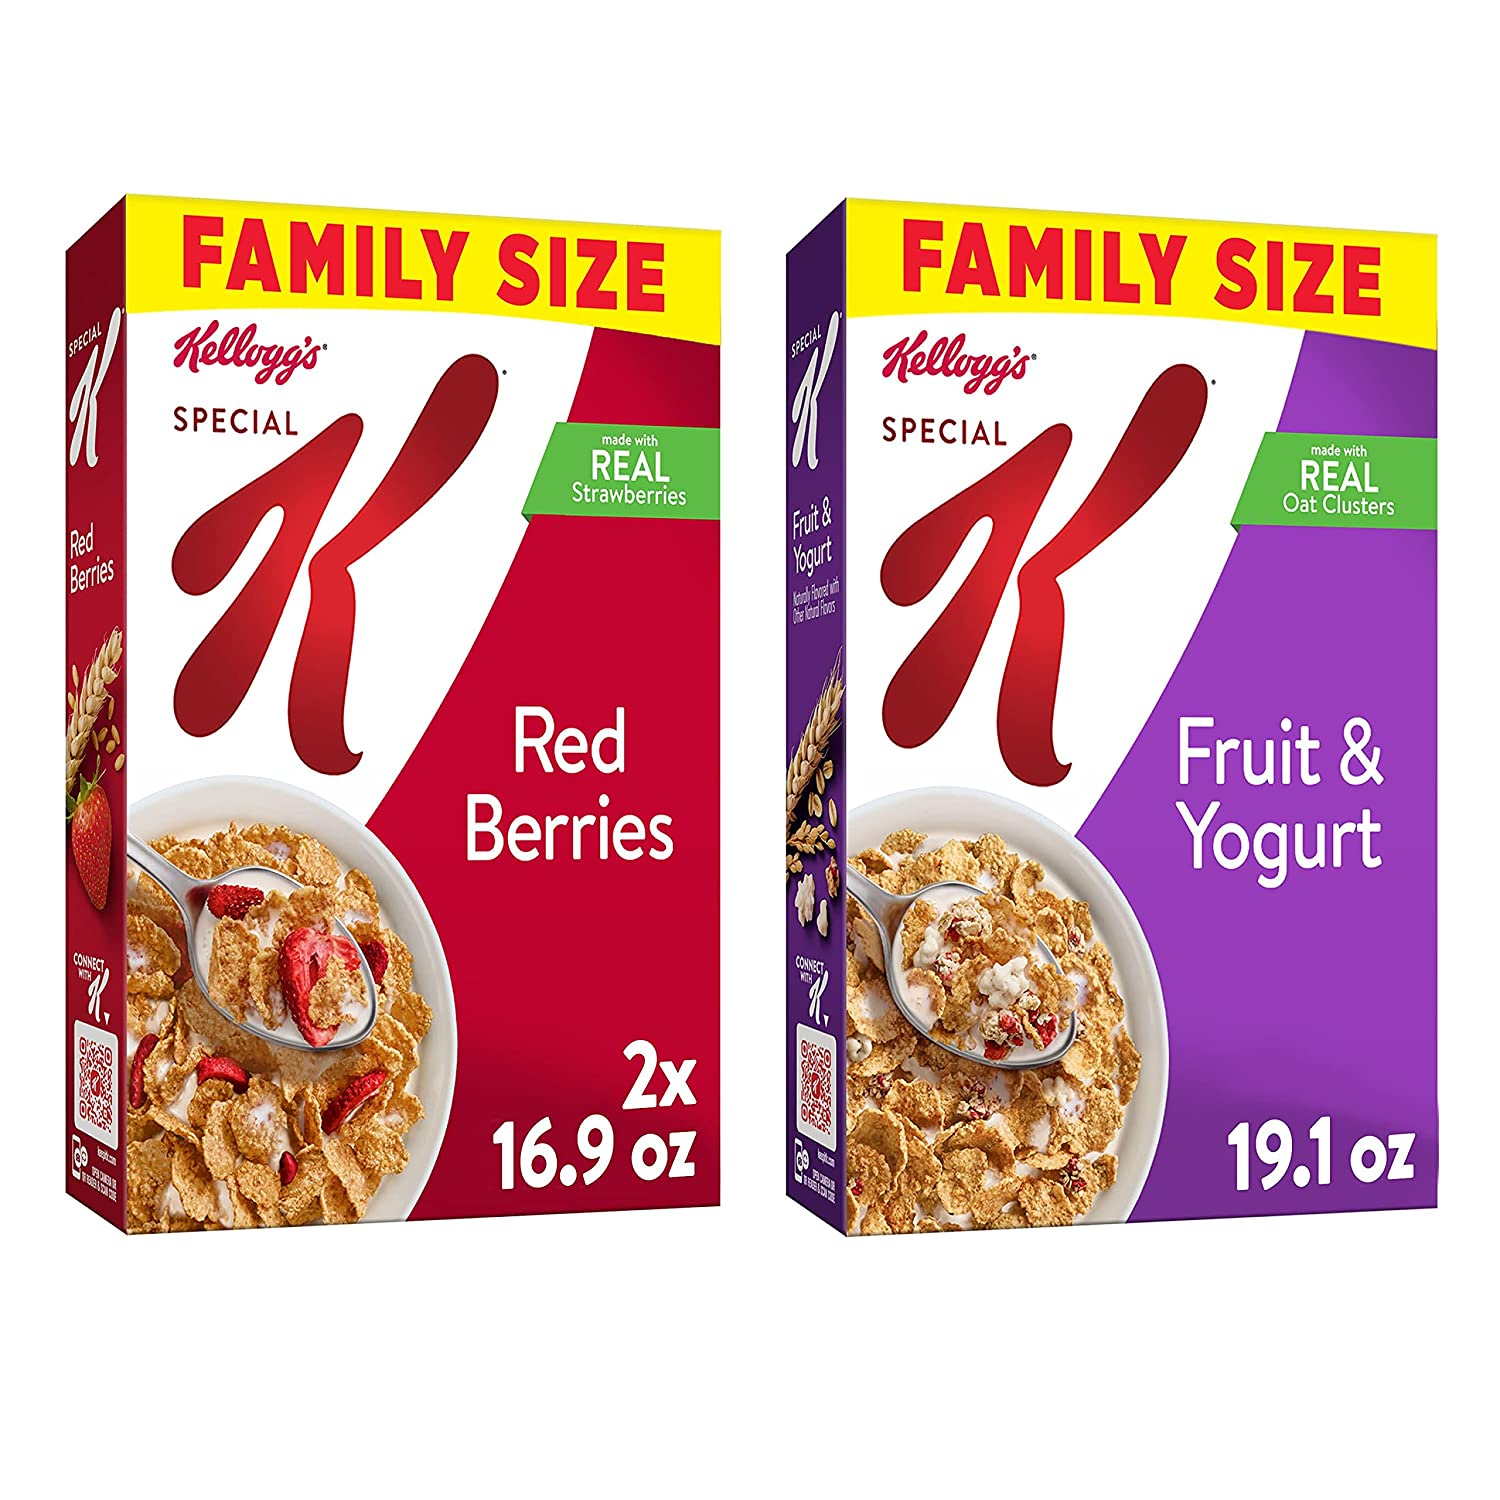 Kellogg's Special K Breakfast Cereal, Variety Pack, Red Berries, 16.9 oz Box (2 Boxes) and Fruit and Yogurt, 19.1 oz Box (1 Box)